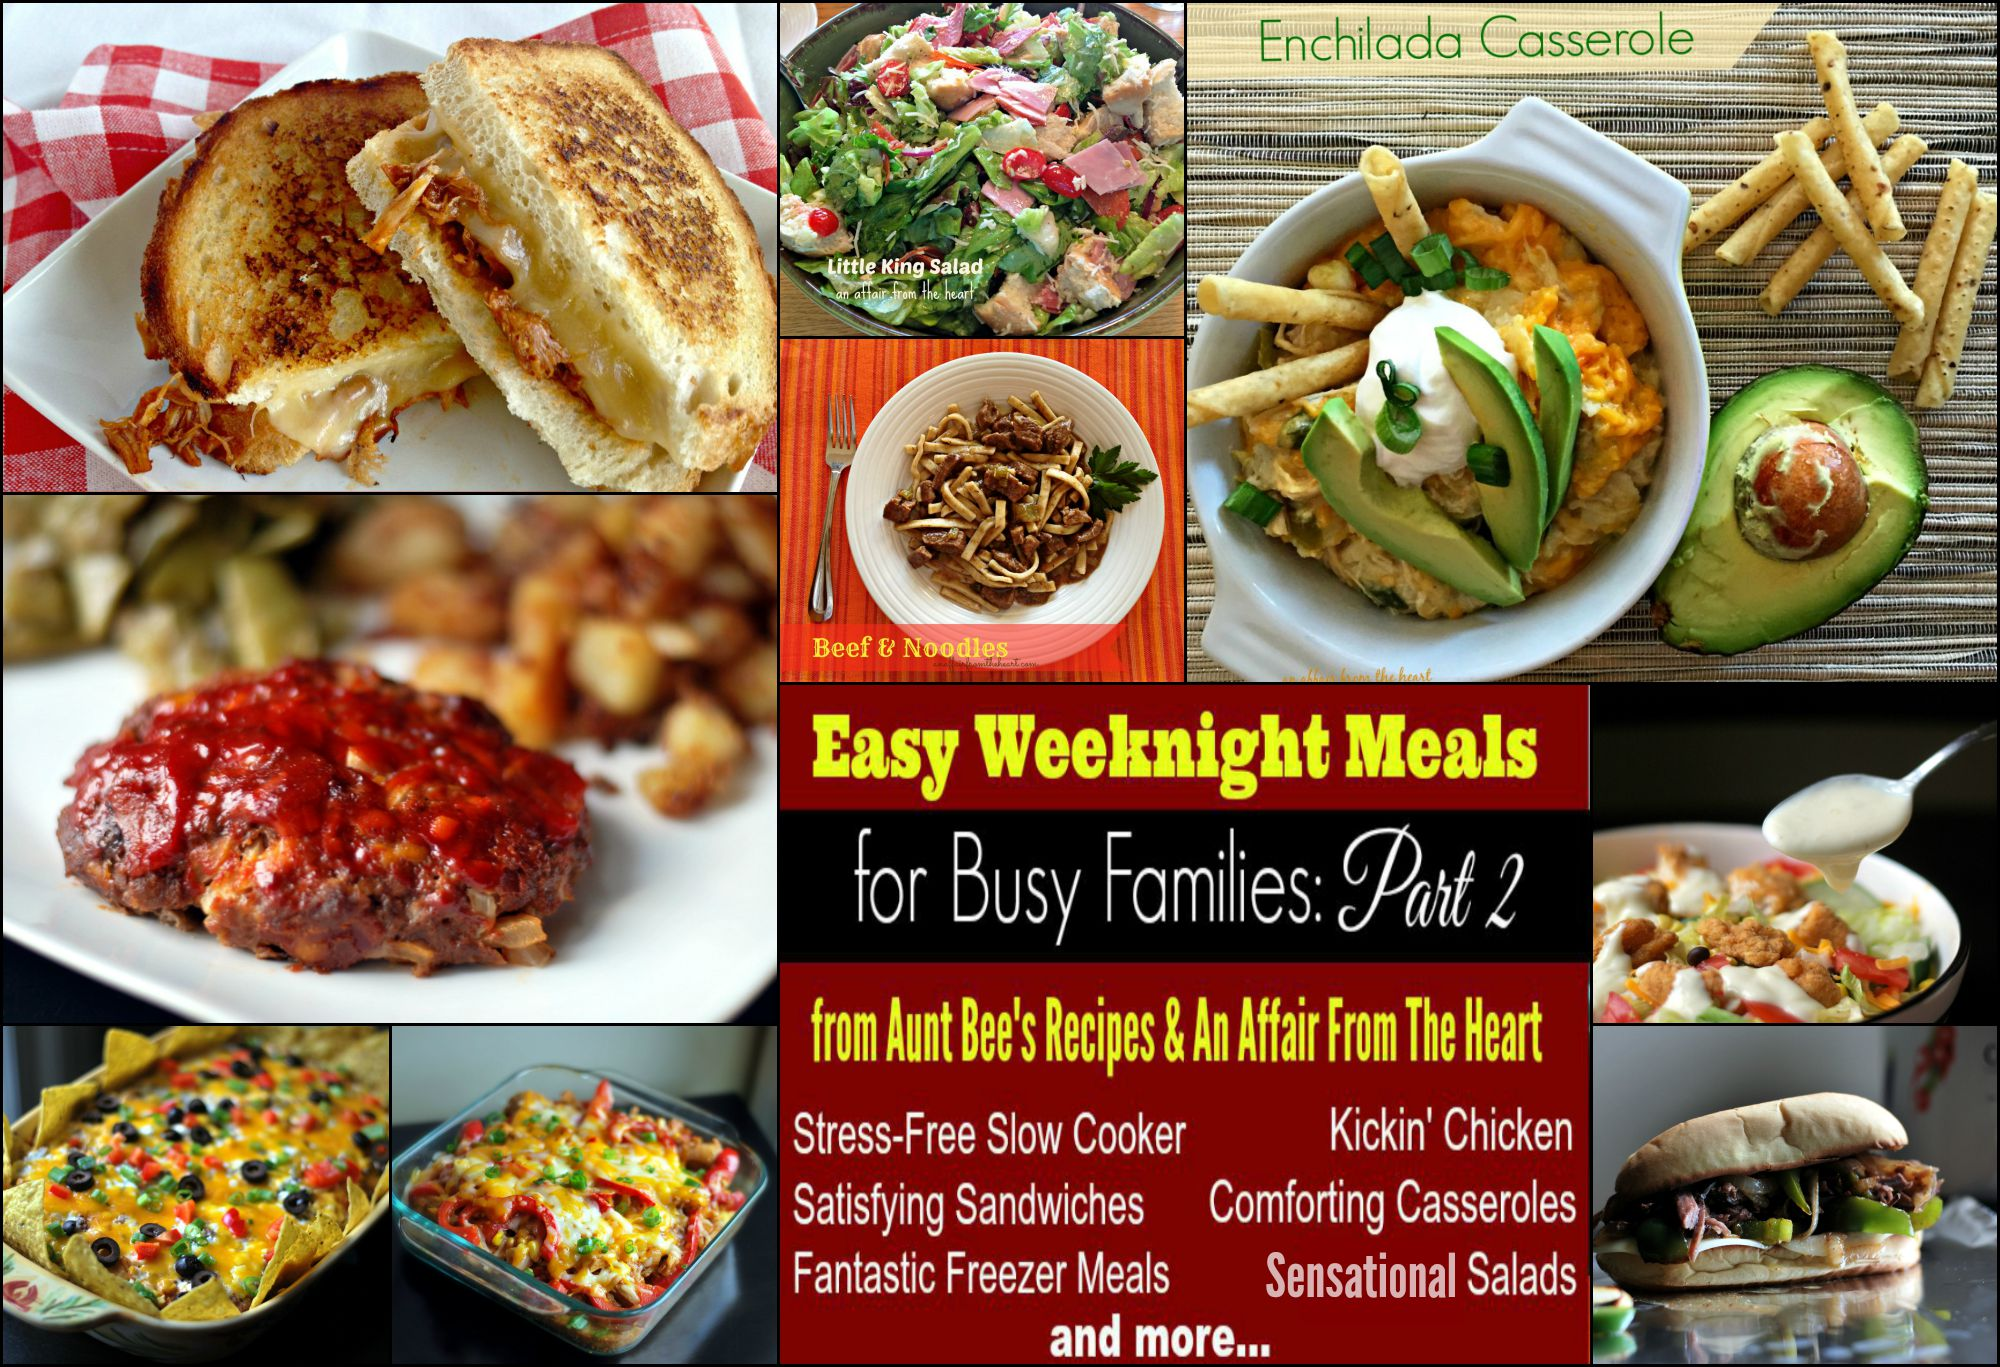 Easy Weeknight Meals For Busy Families Part 2